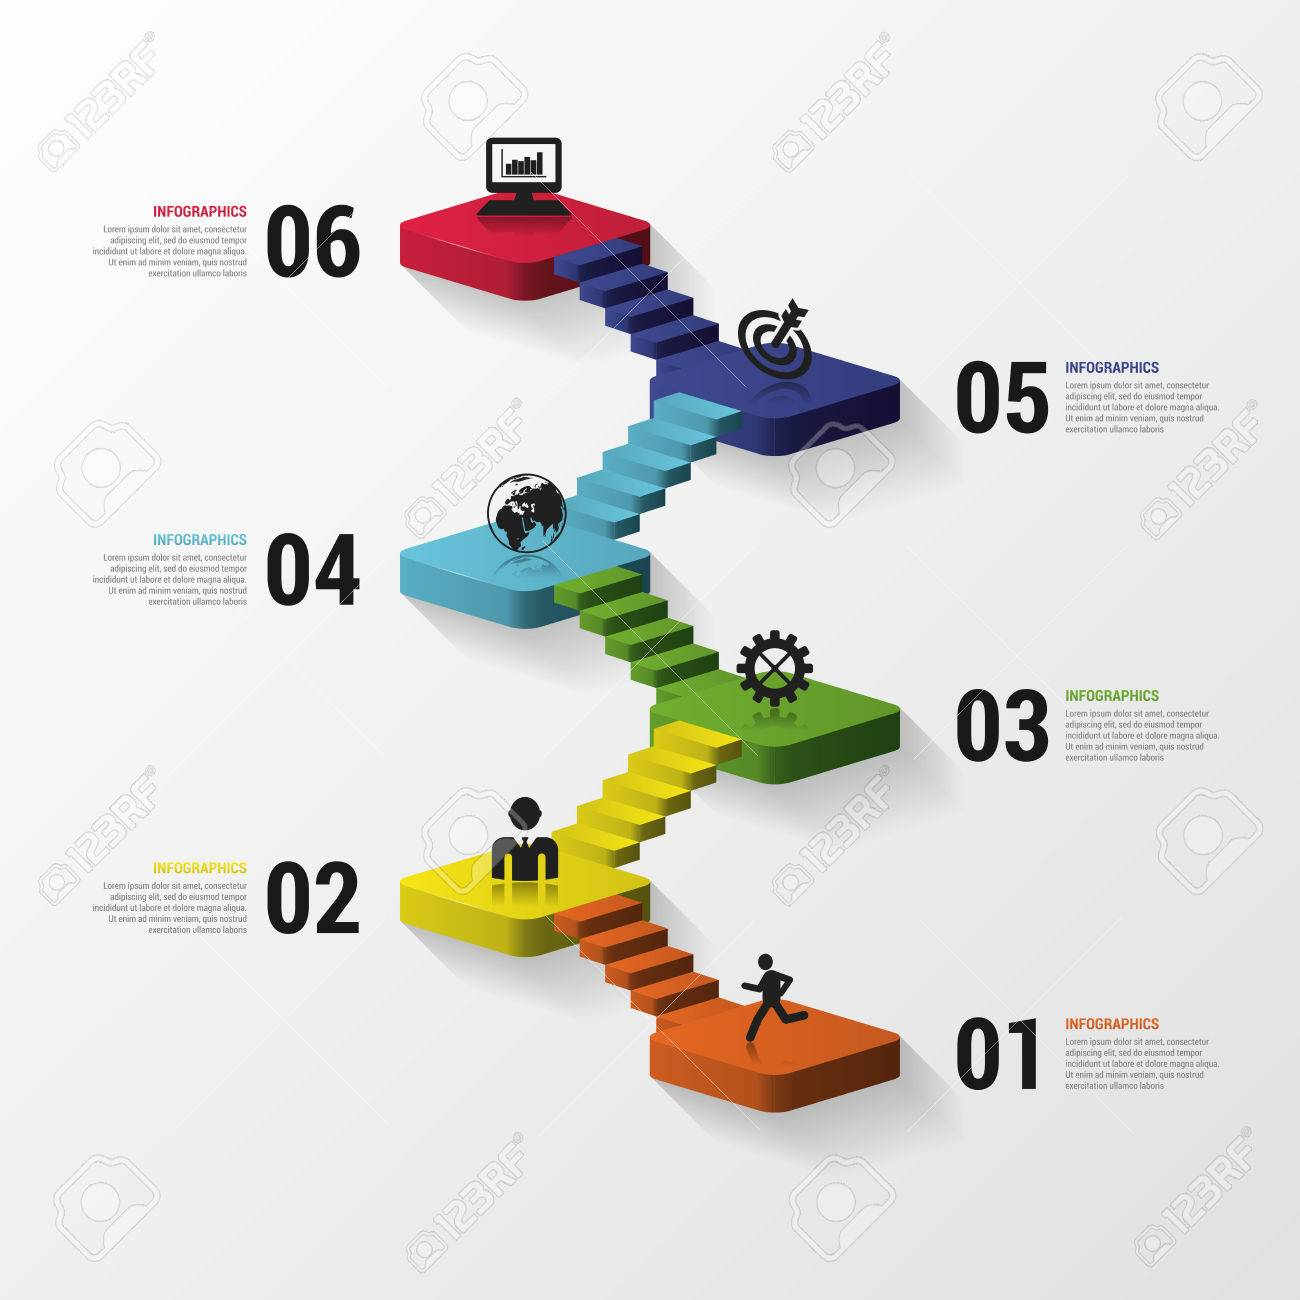 Abstract 3d Stairs Infographics Or Timeline Template  Vector     Abstract 3d stairs infographics or timeline template  Vector illustration  Stock Vector   45338498